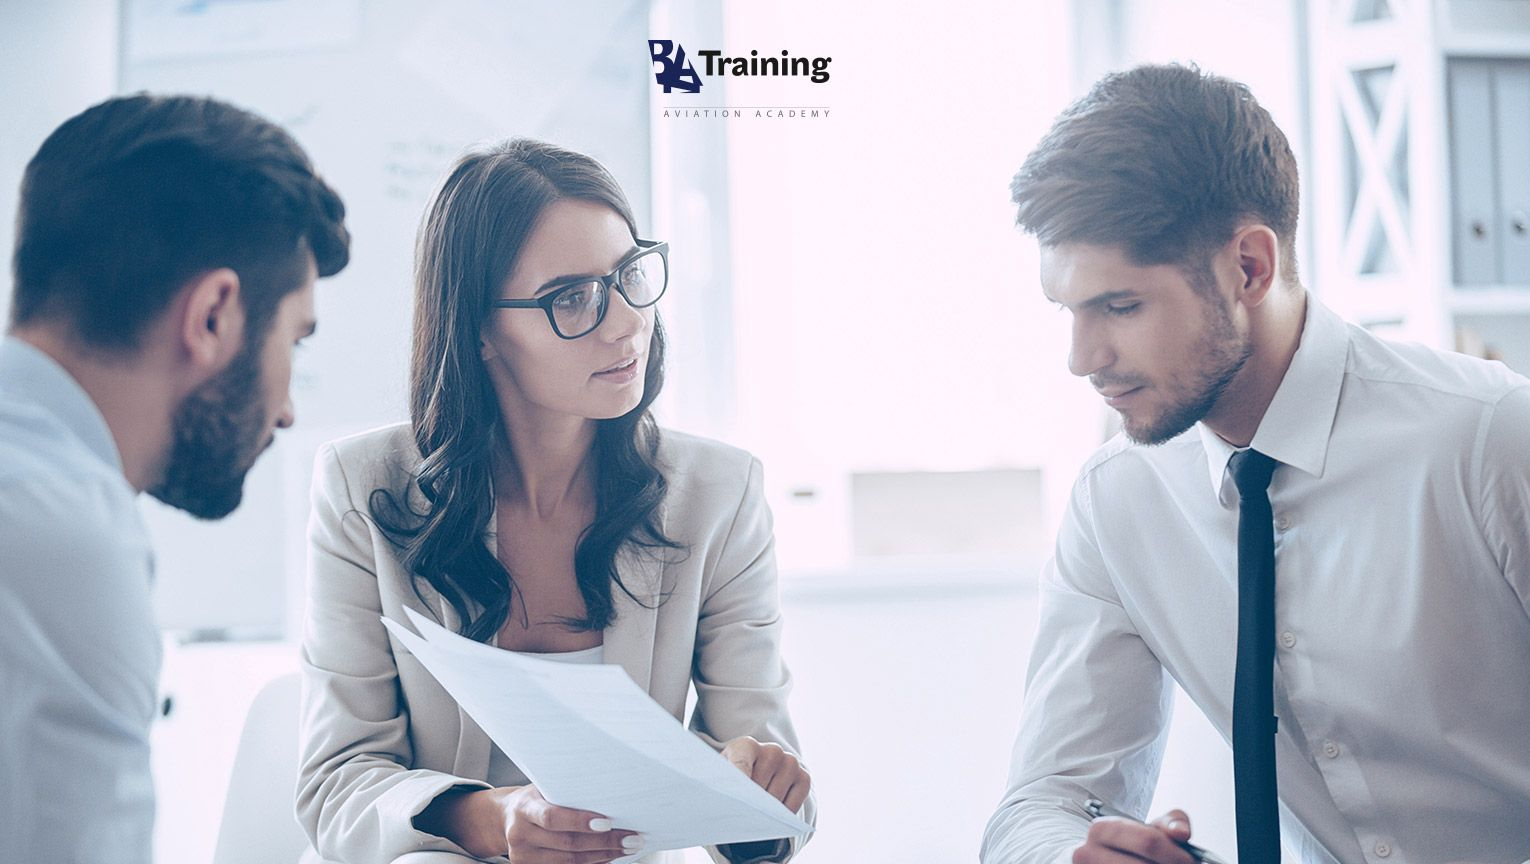 Offers Job Preparation Training For Pilots And Crew